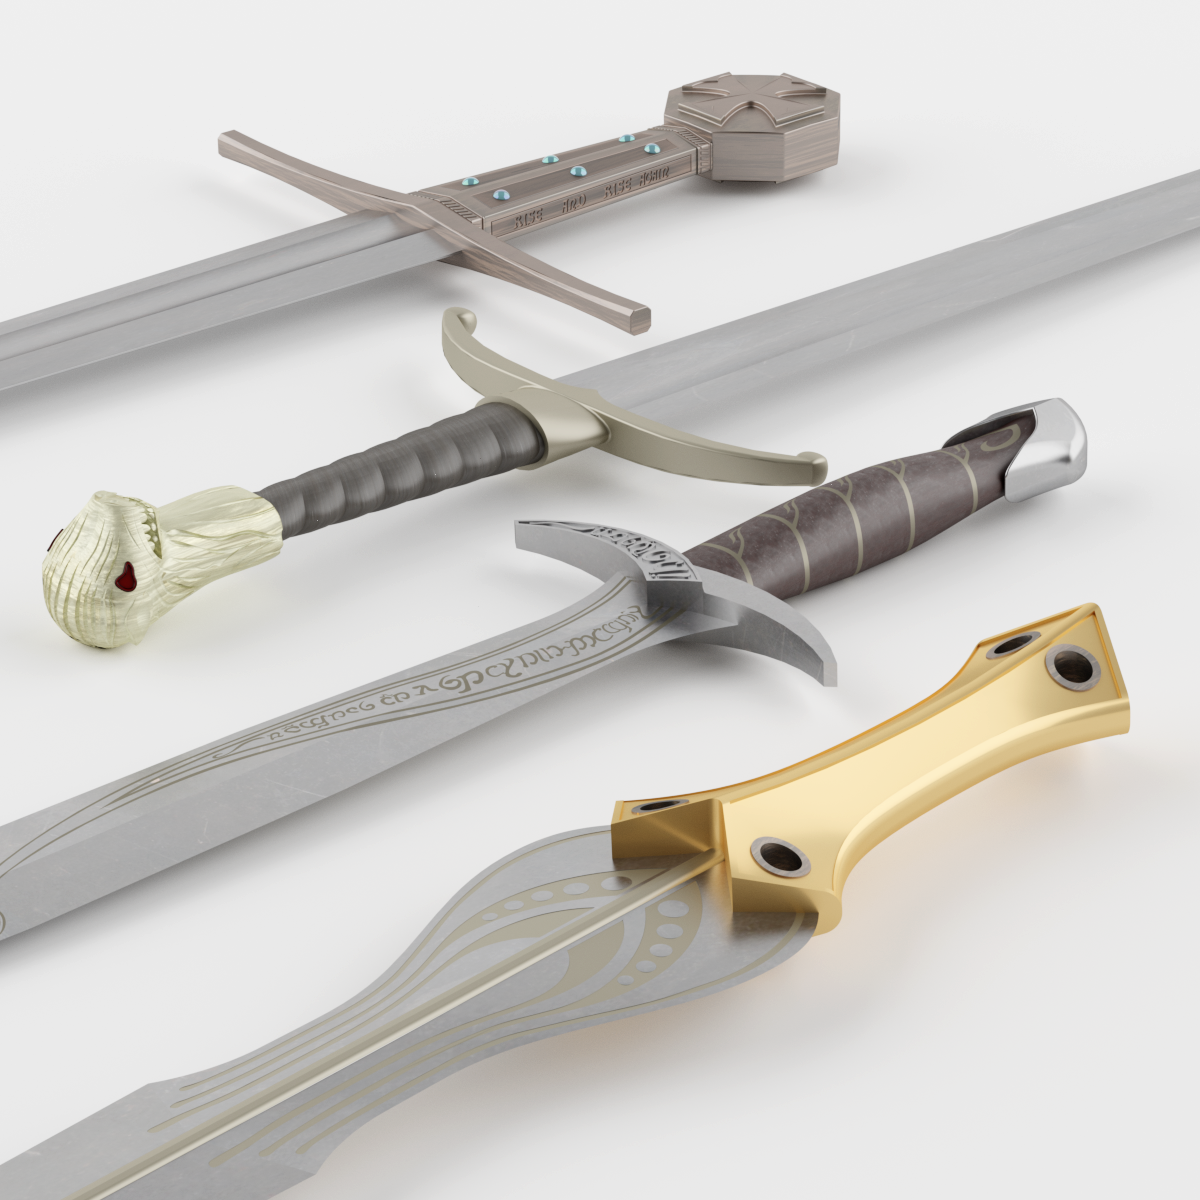 3D realistic replicas of movie swords  Game of Thrones Longclaw